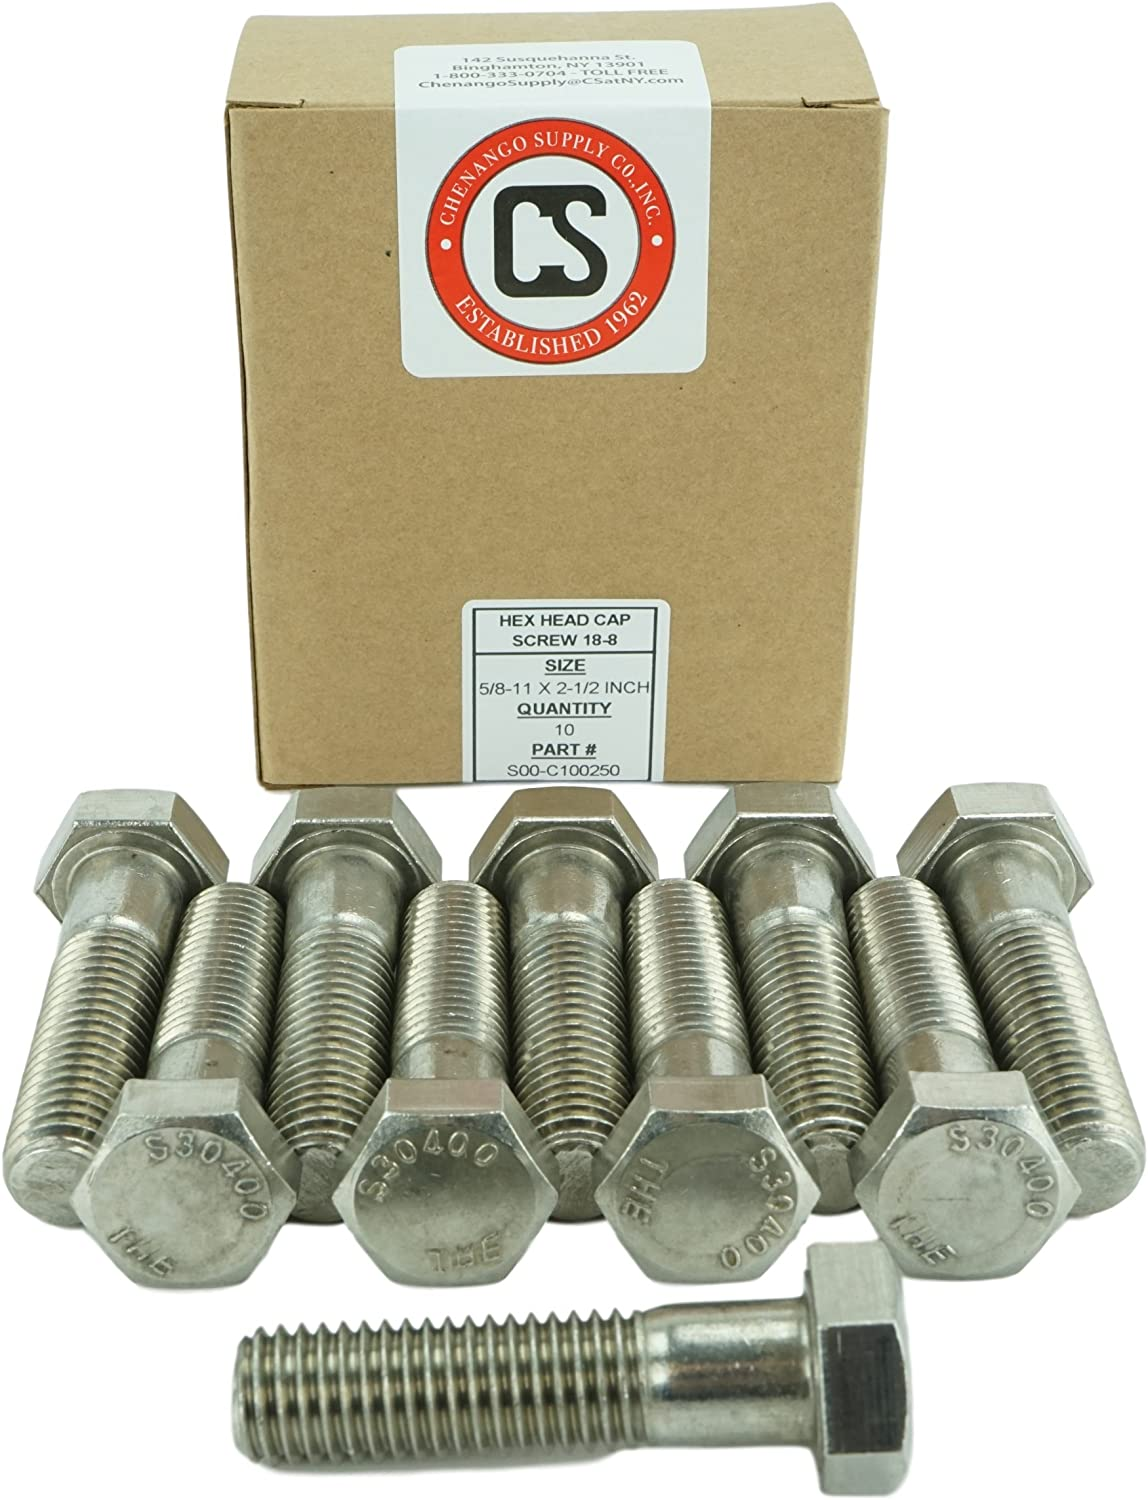 Chenango Supply 10 pieces 5//8-11 x 4-1//2 1 To 6 Lengths Available in Listing Stainless 5//8-11 x 4-1//2 Hex Head Bolts 5//8-11 x 4-1//2 304 Stainless Steel 10 pieces